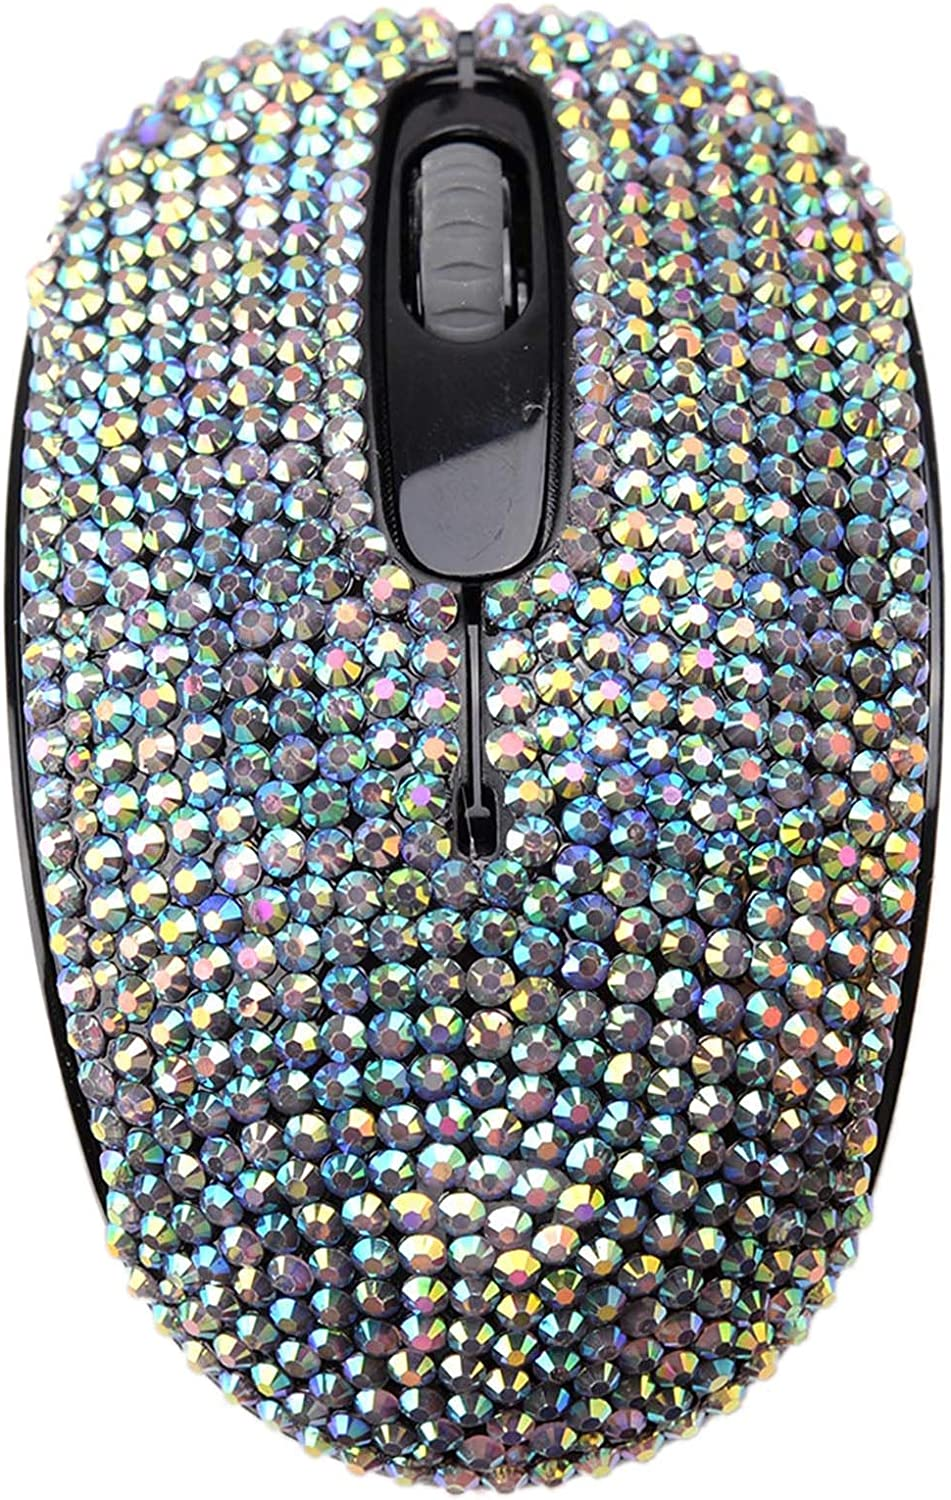 SA@ Luxury 6 Colors Bling Crystal Rhinestone 2.4G Wireless Mouse for Laptop, Notebook, PC, Computer, MacBook Gifts for The Office (Pink Colorful)